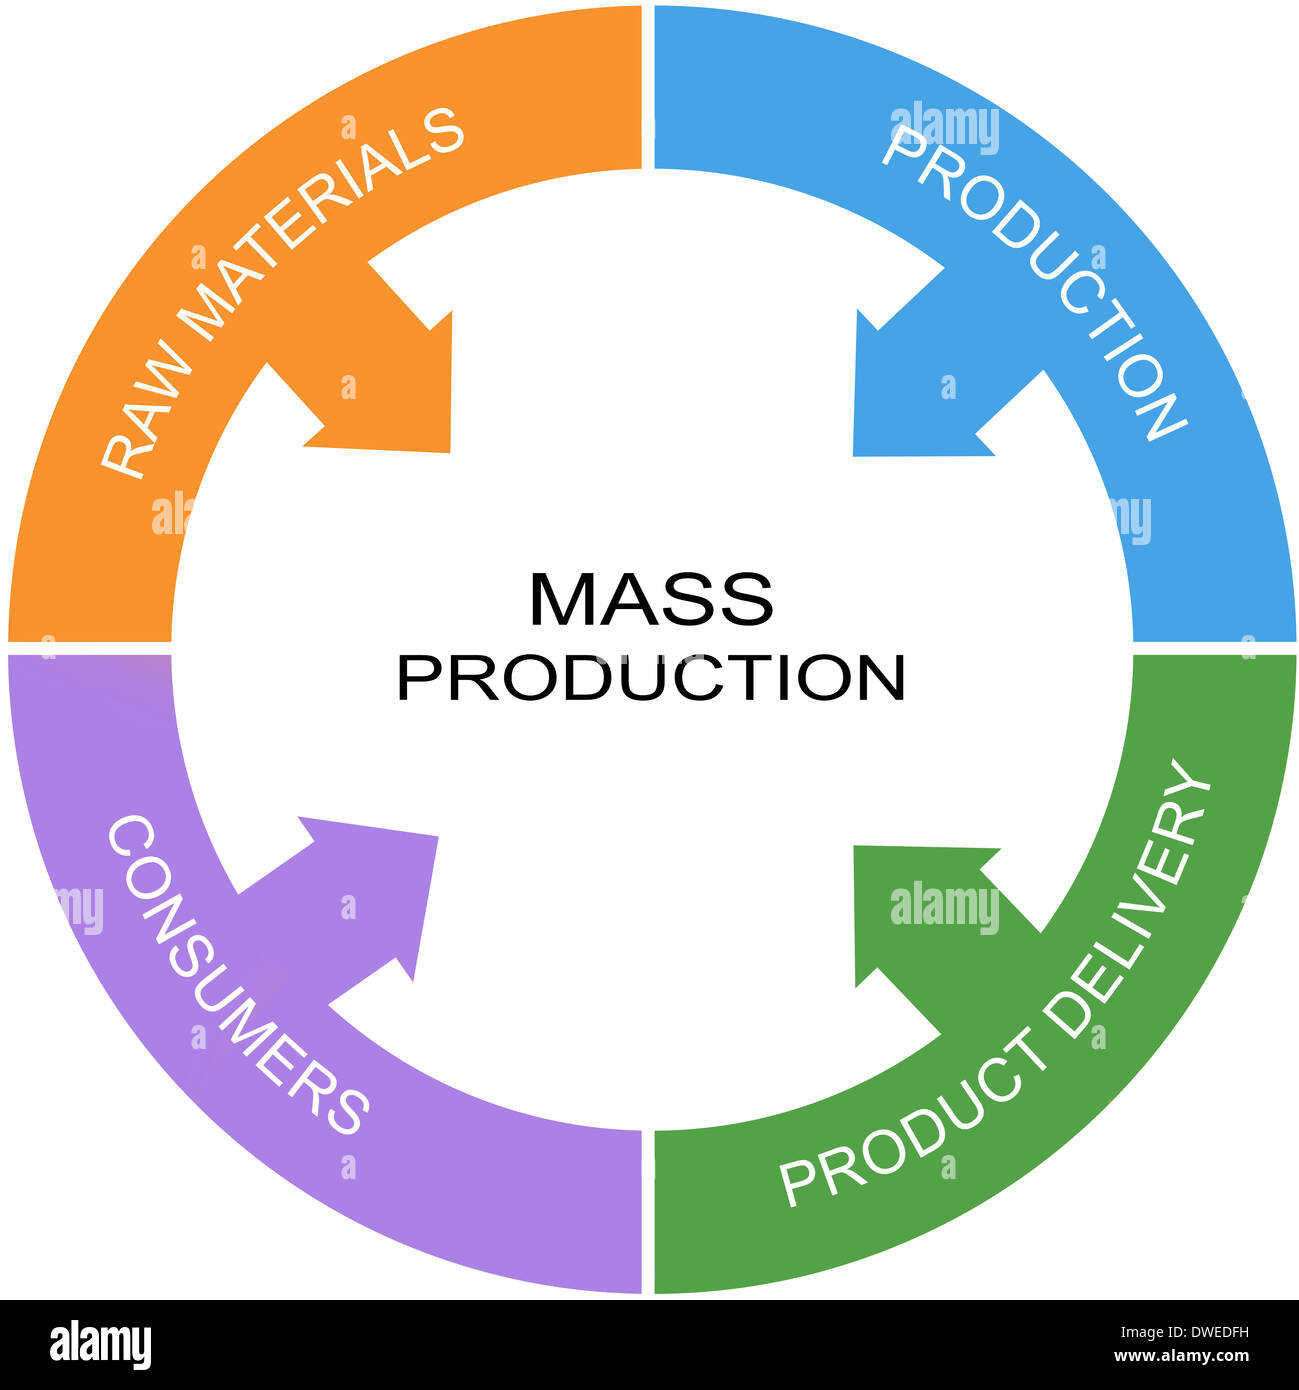 Mass Production Word Circle Concept with great terms such as consumers, production and more. - Stock Image